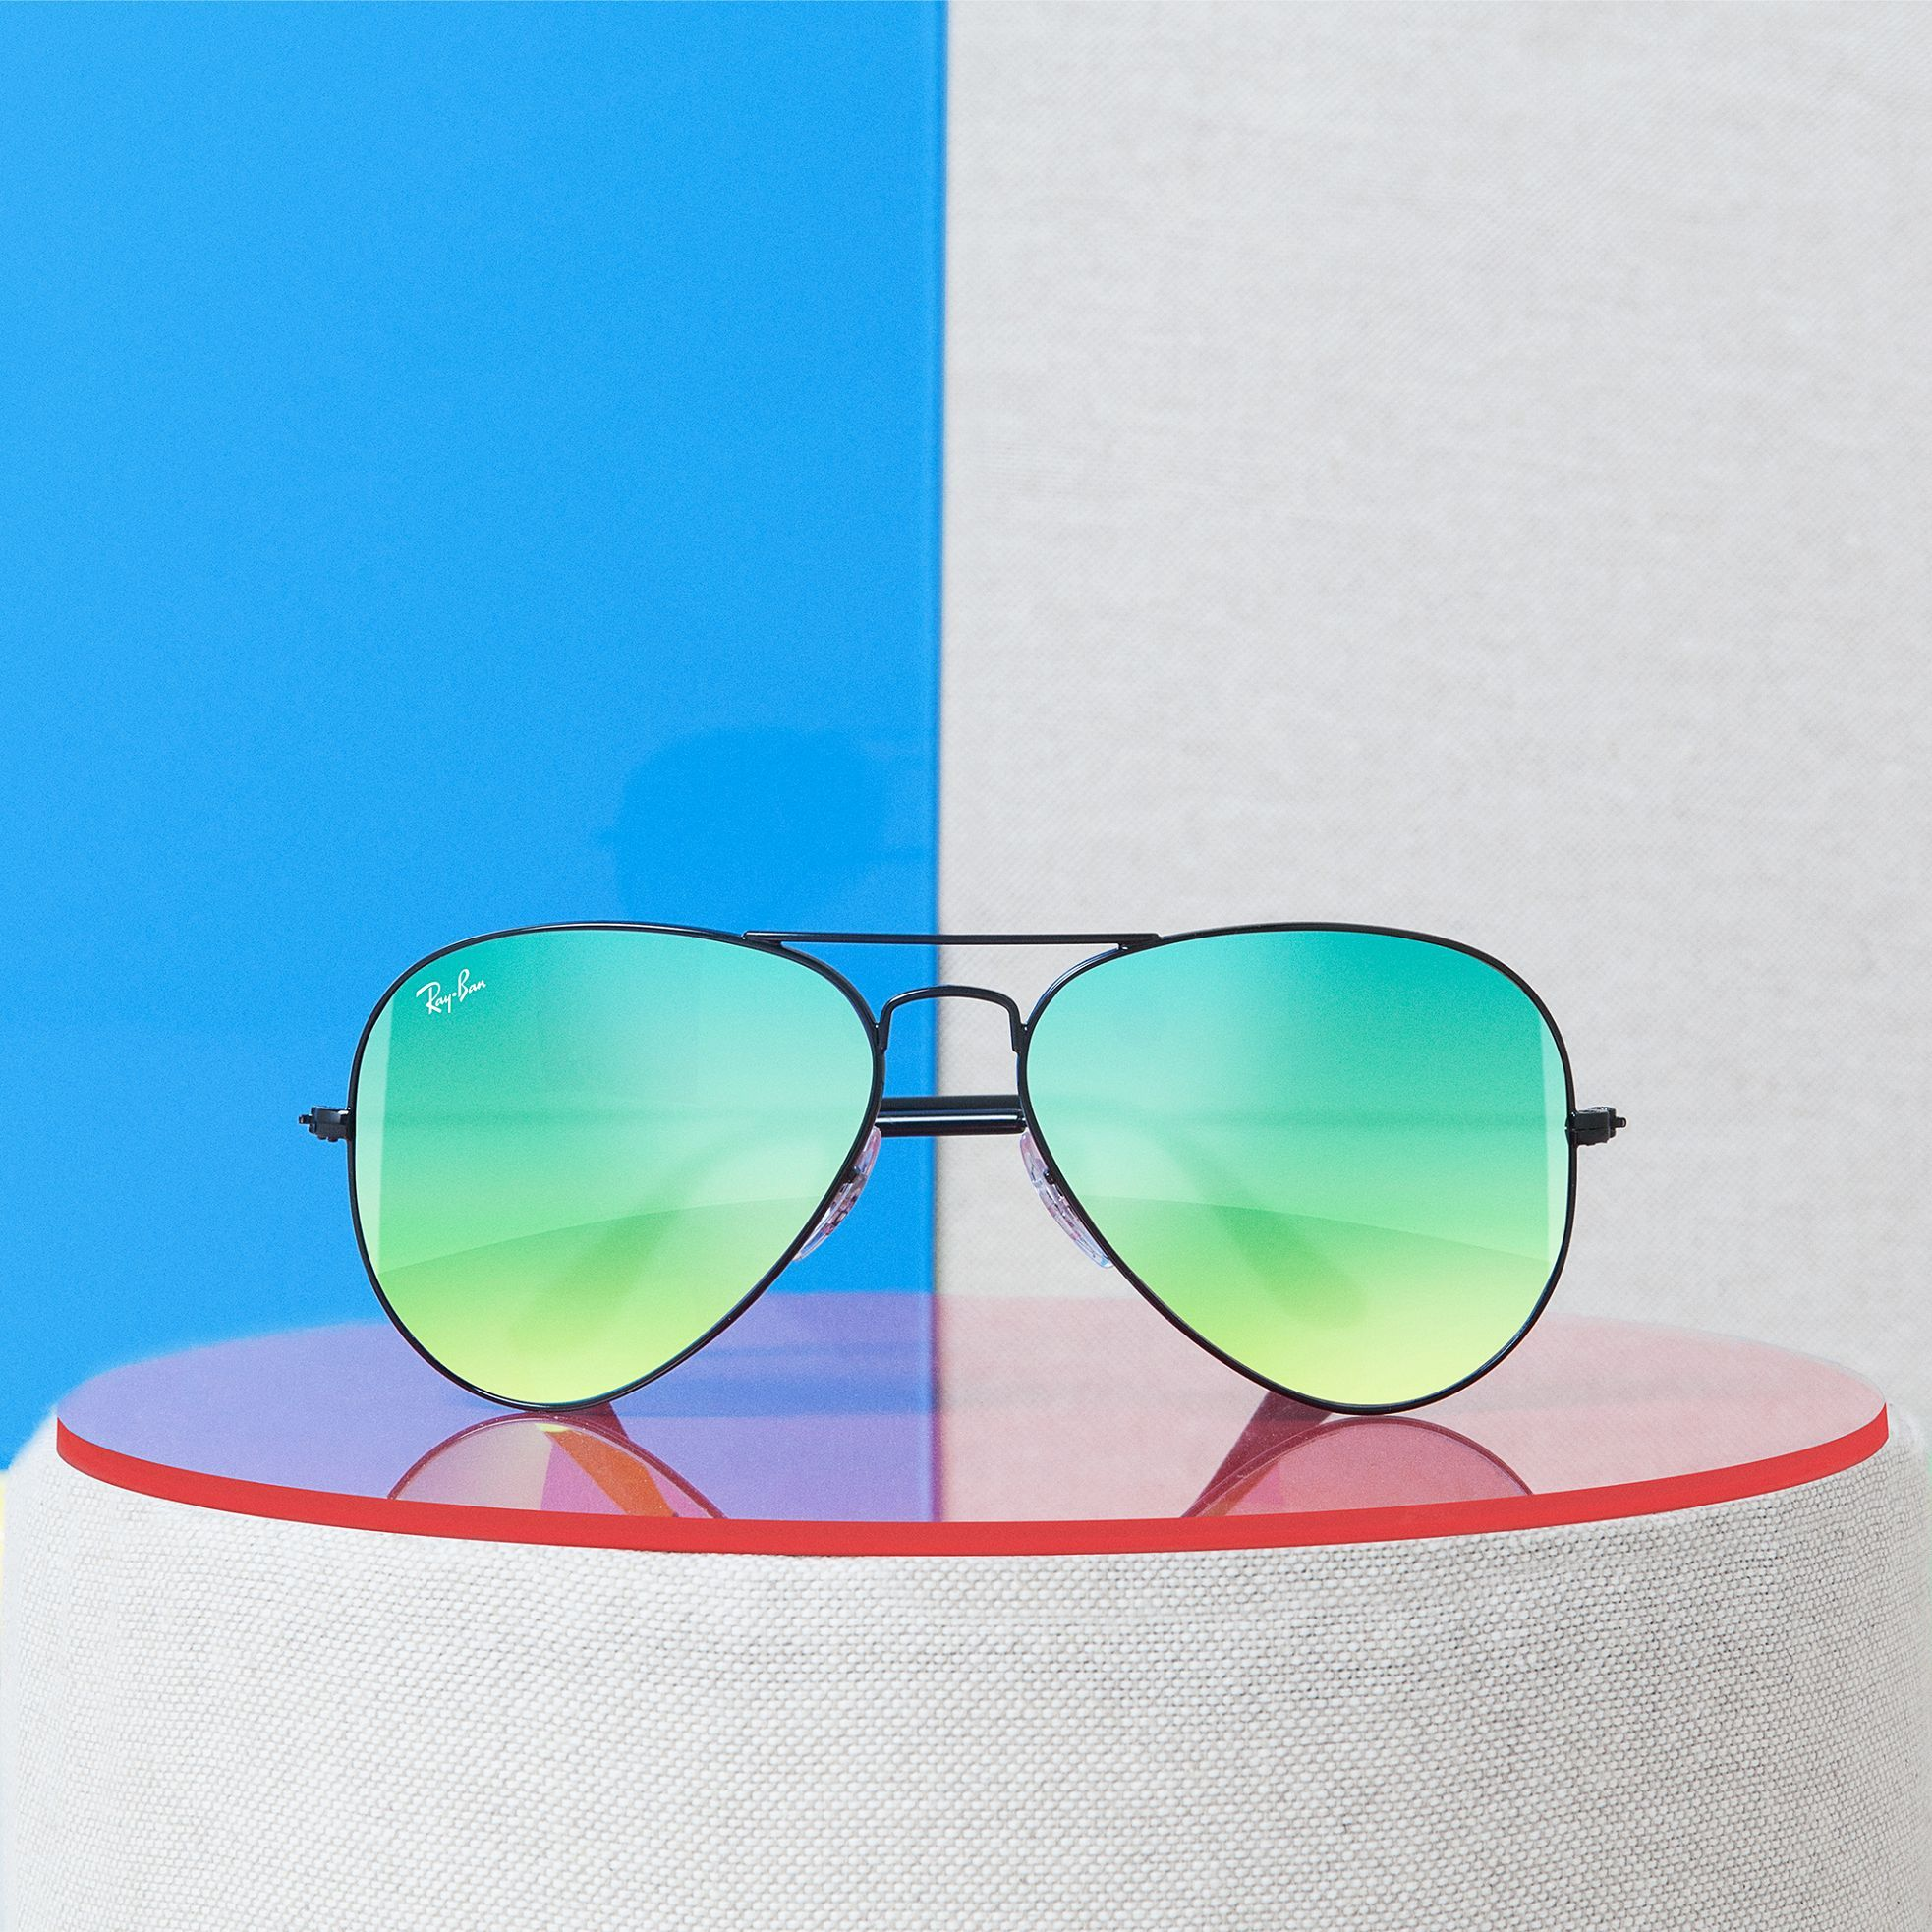 Rb sunglasses on ray ban sunglasses outlet ray ban